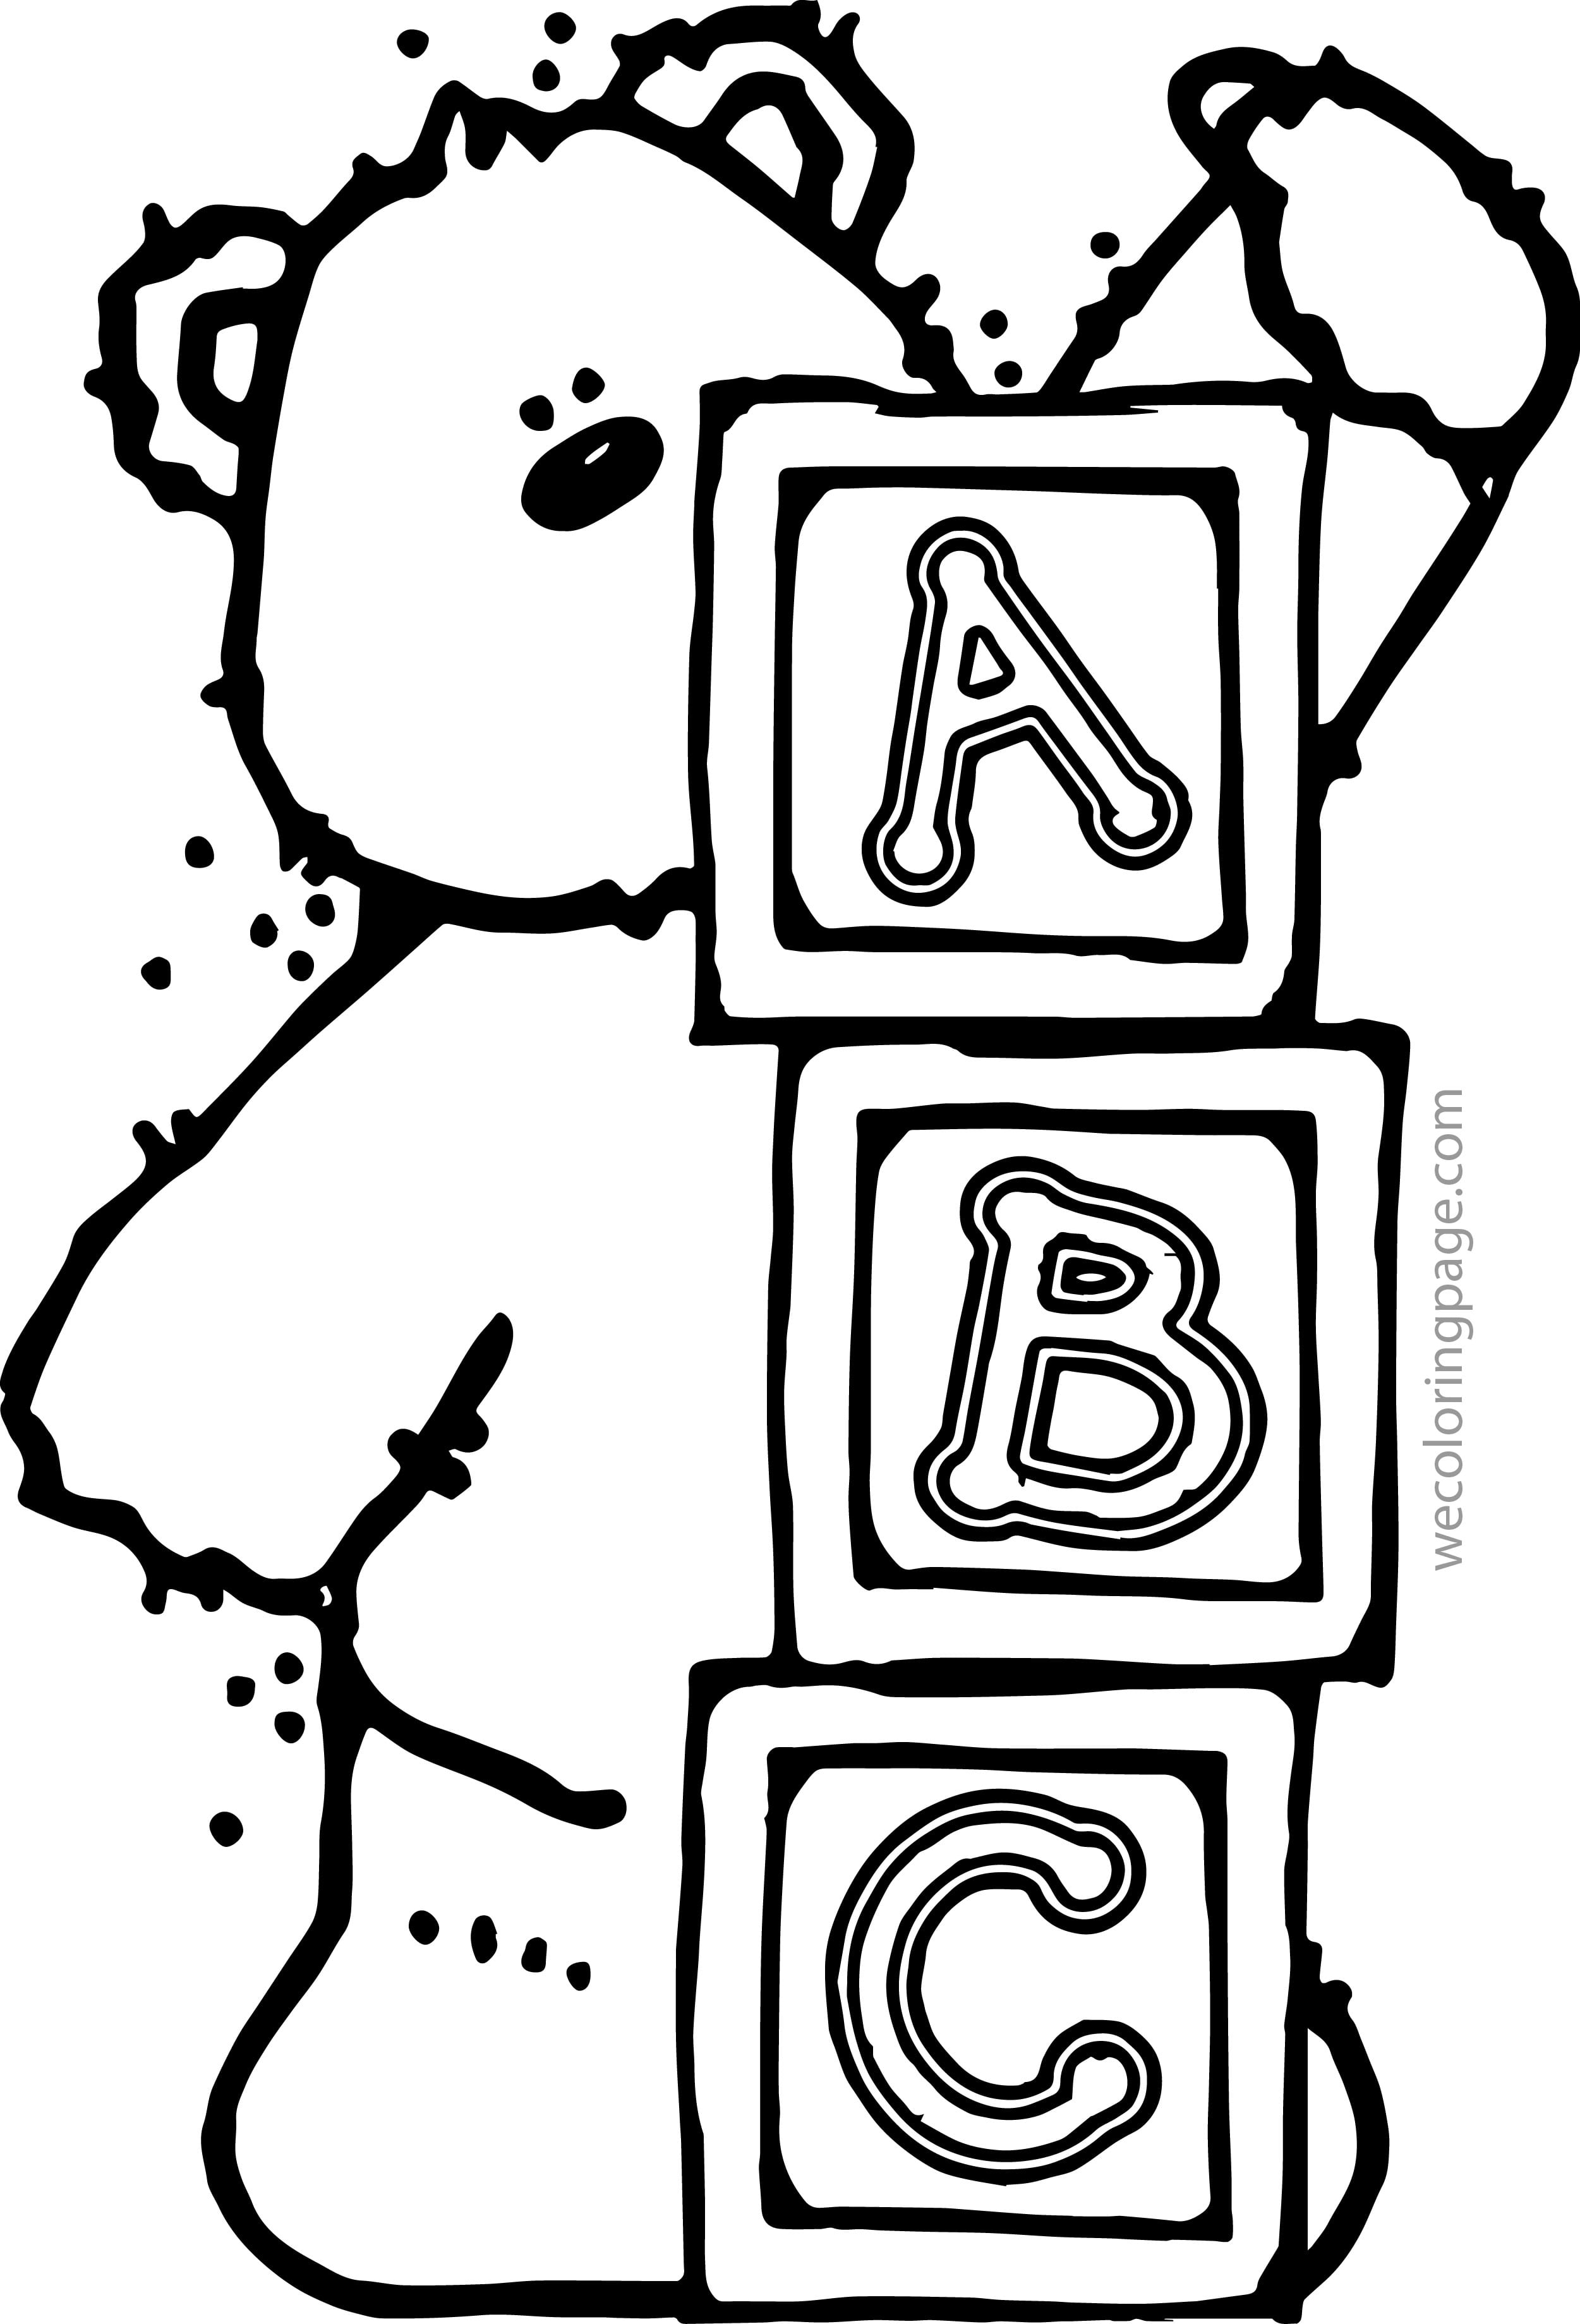 Abc Coloring Pages Wecoloringpage Coloring Book 27777